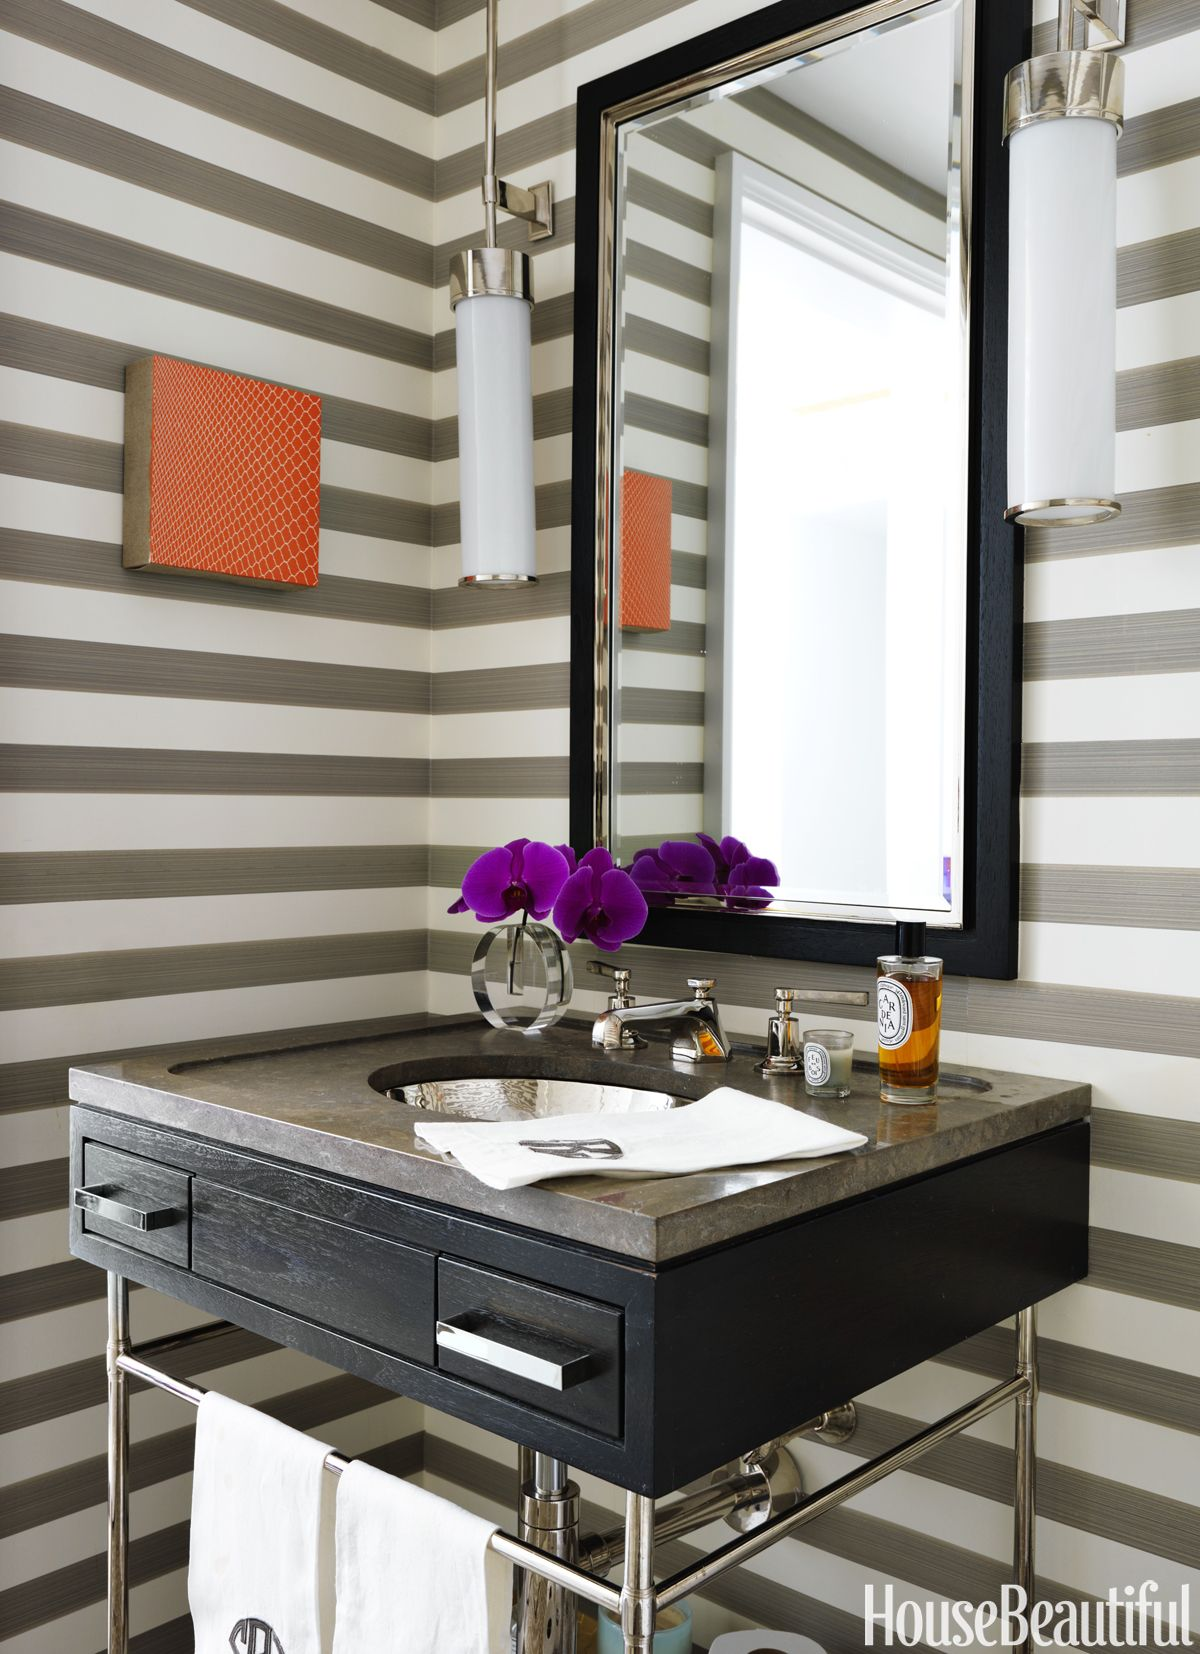 """I'm pretty sure this stripe is supposed to be hung vertically, but I love it this way!"" Sarah Rose says about Farrow & Ball's Five Over Stripe wallpaper. It brings a bold touch to the powder room. A painting by Sara Eichner adds a pop of orange. - HouseBeautiful.com"